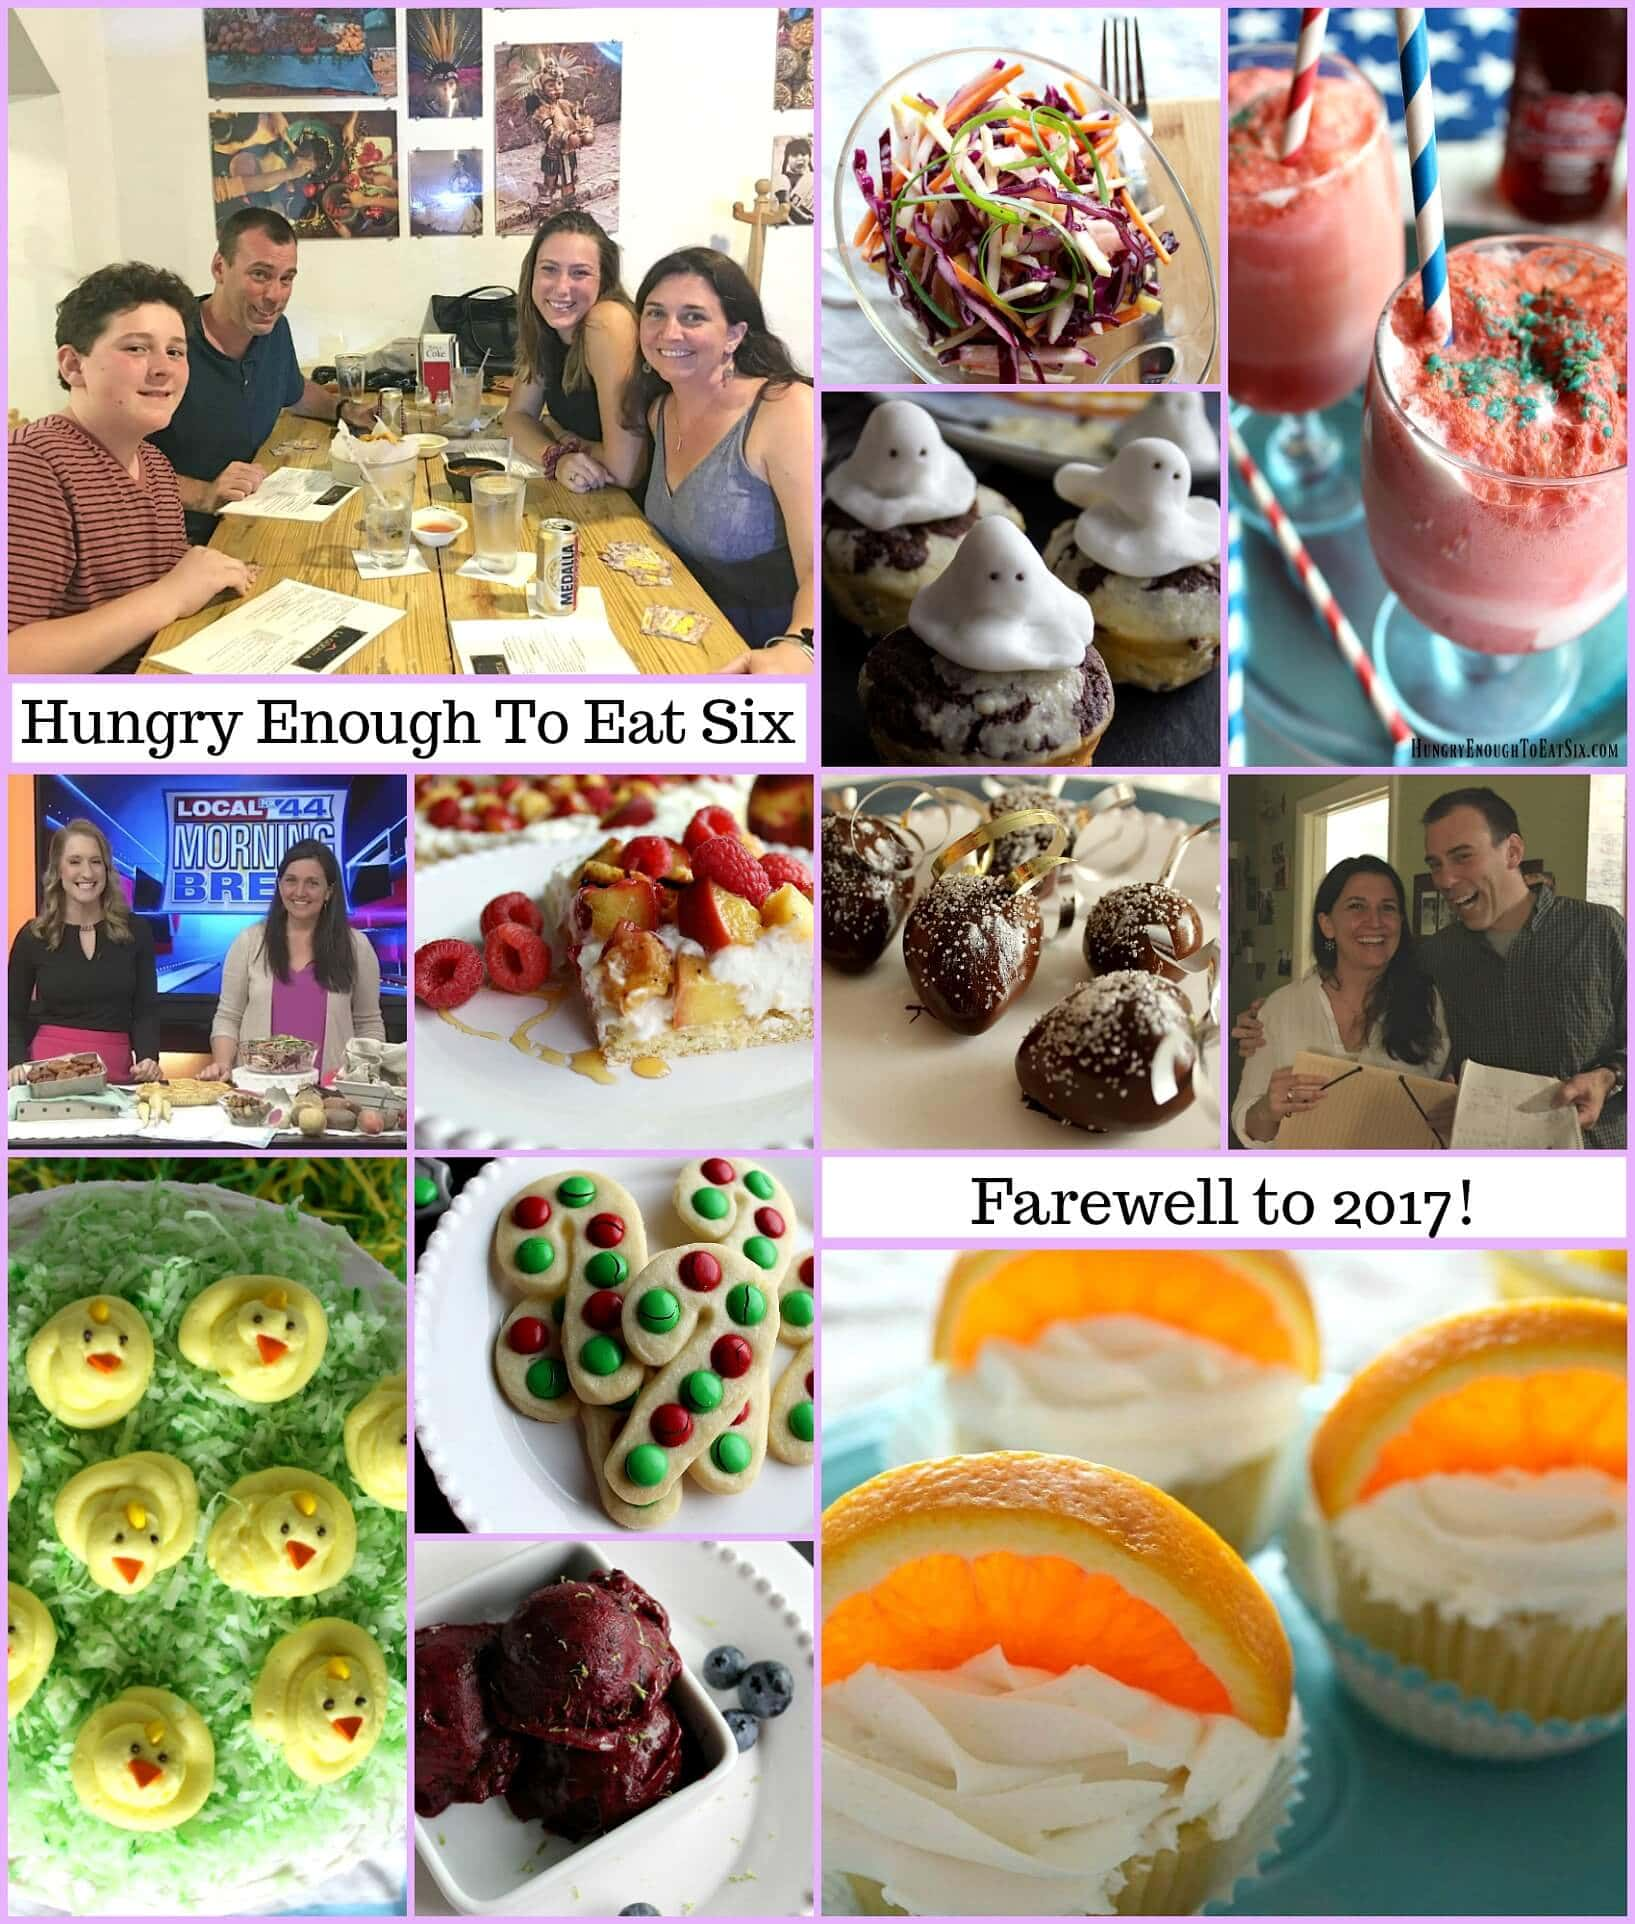 As we say farewell to 2017 I'm getting ready for more food adventures in 2018... and I want to hear from you! Take my reader survey.